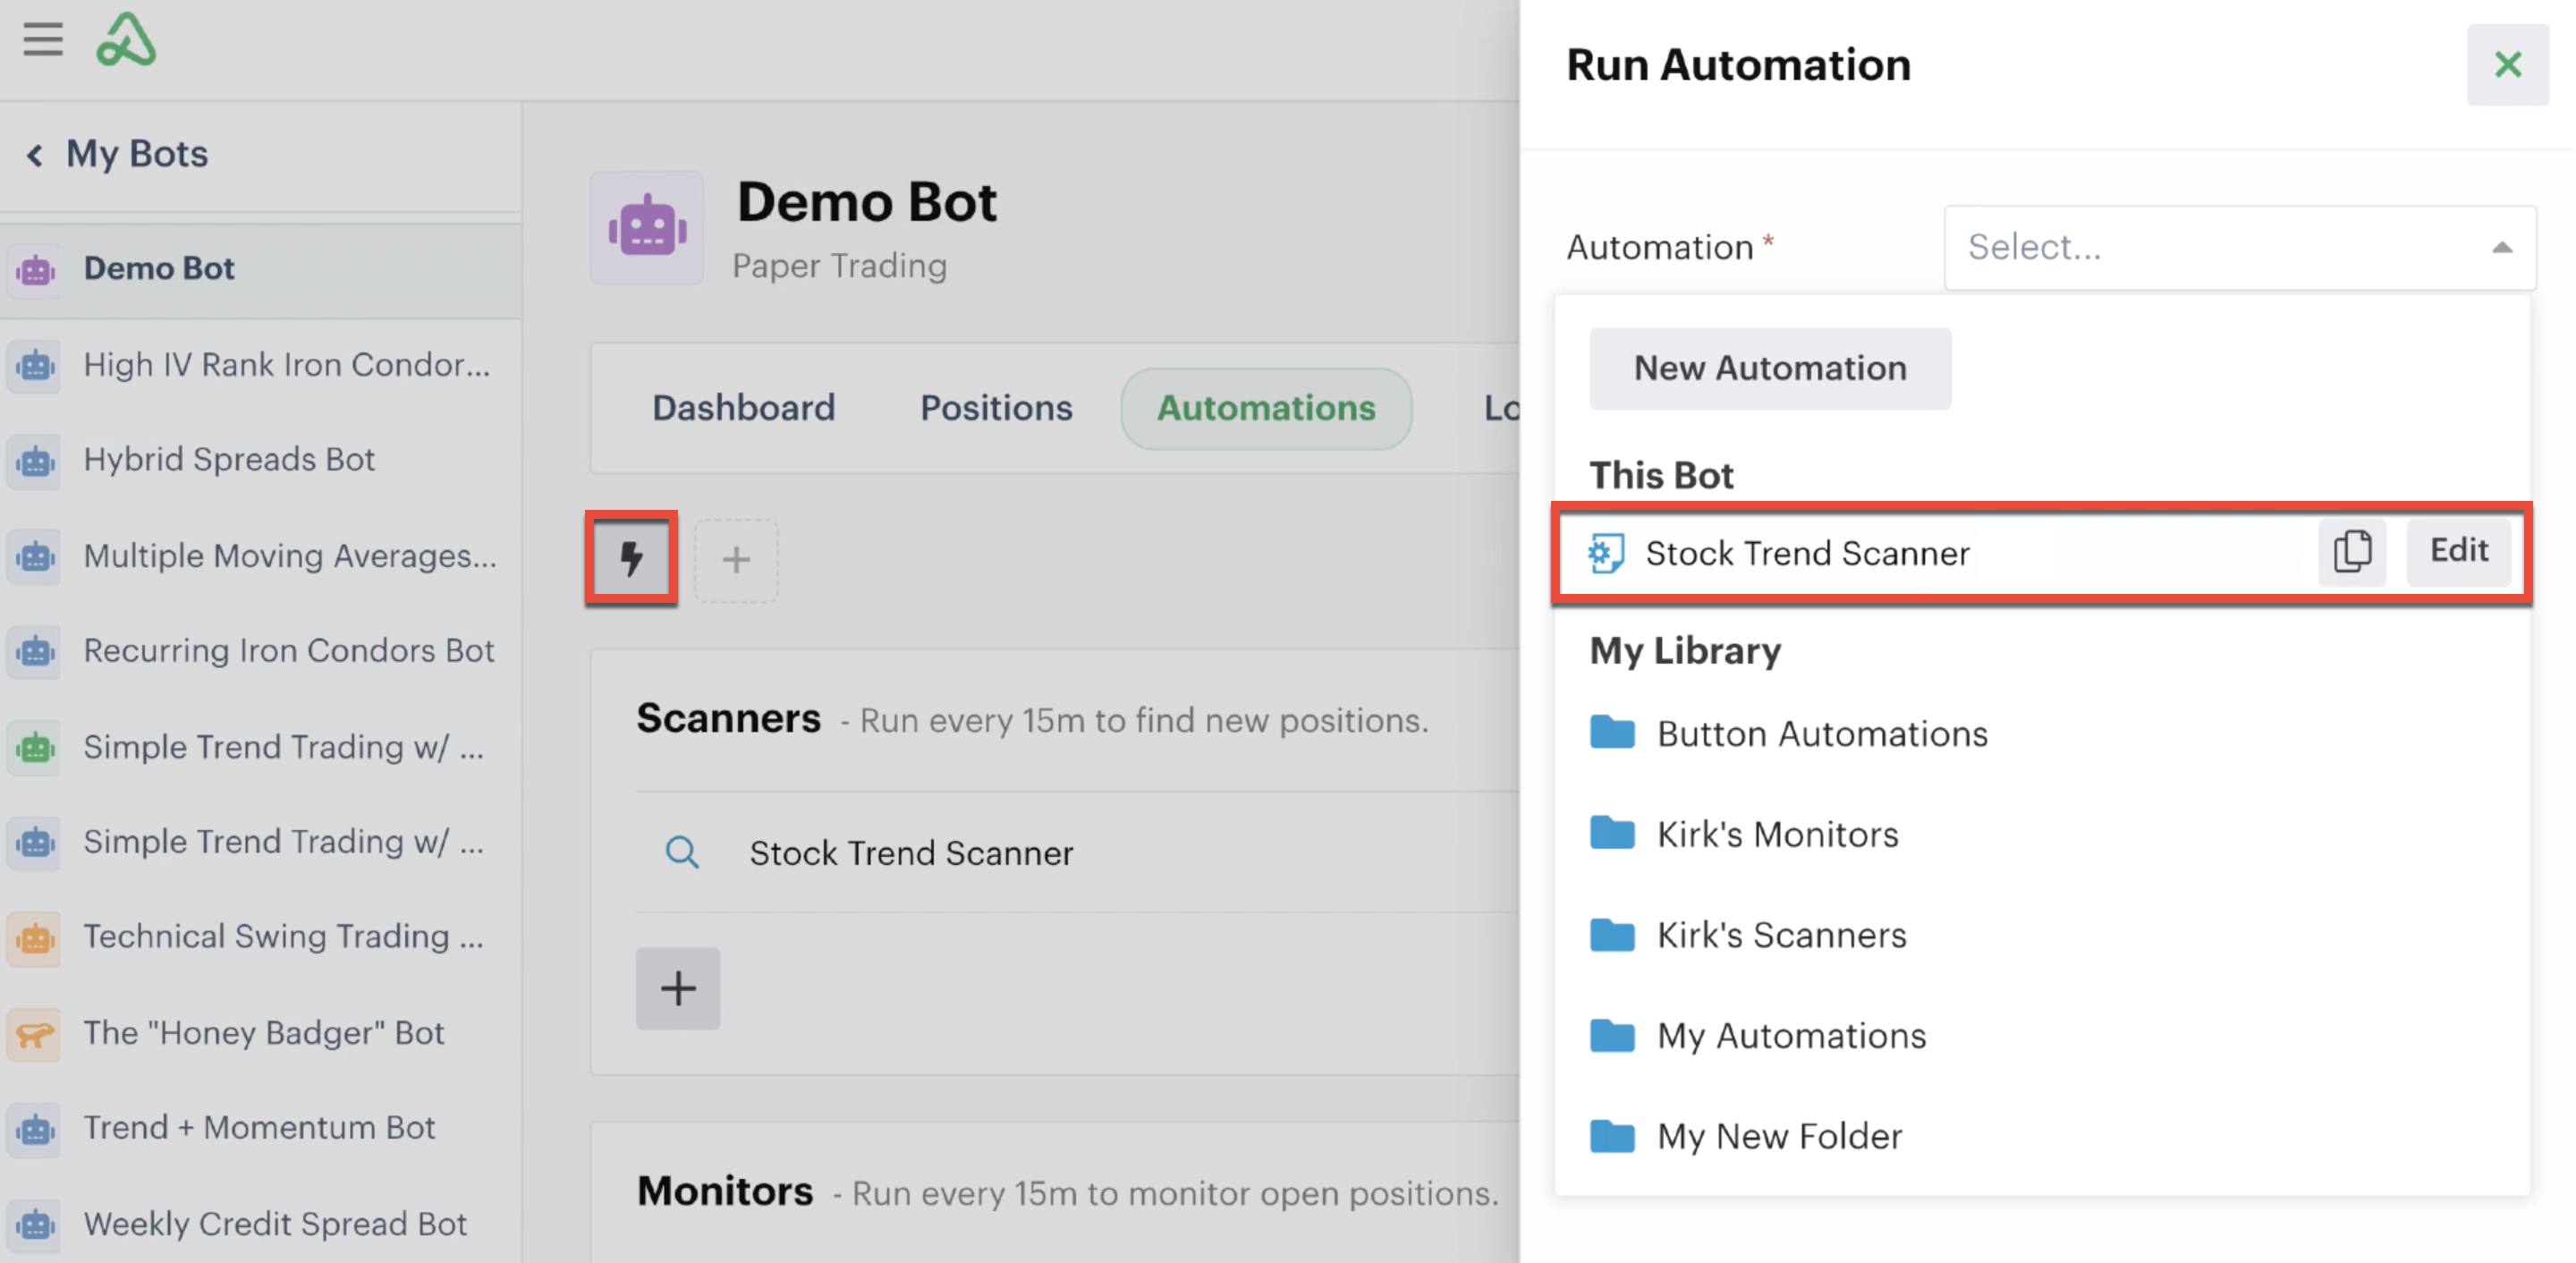 Lightning bolt icon highlighted to run automation instantly